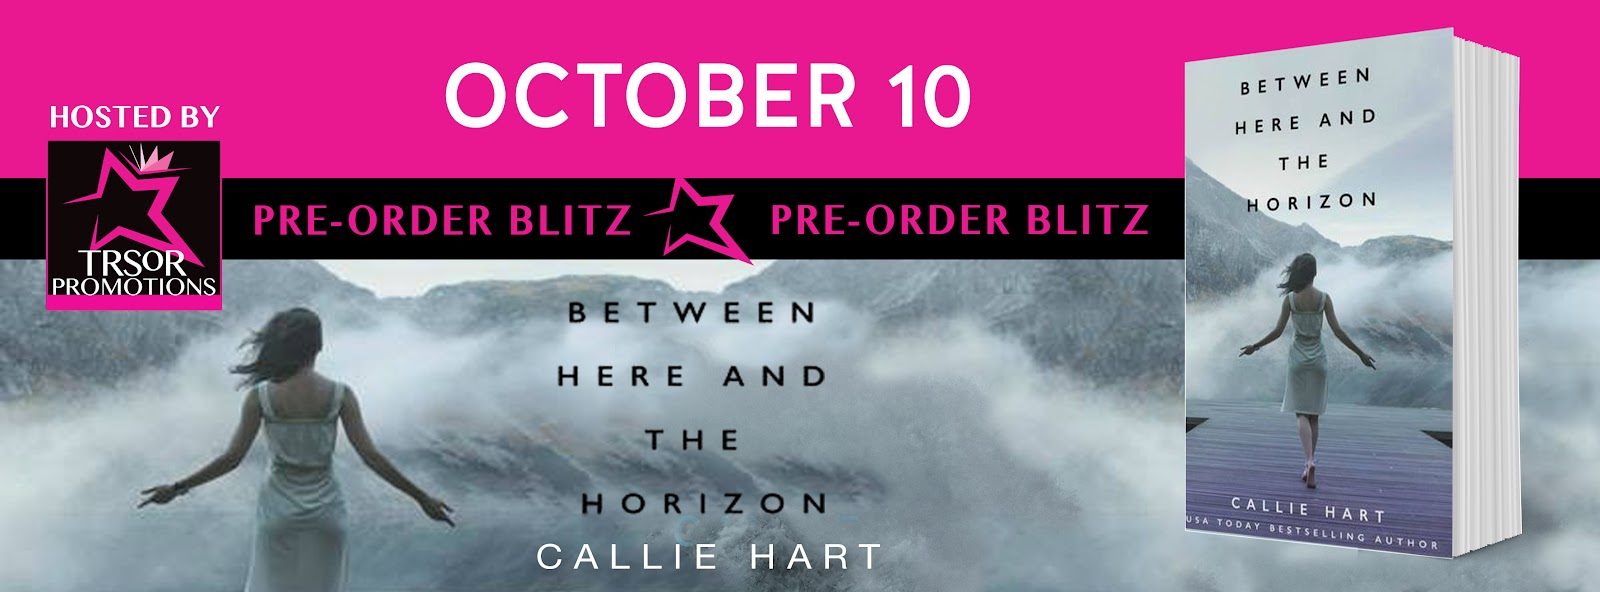 BETWEEN_HERE_PREORDER_BLITZ.jpg